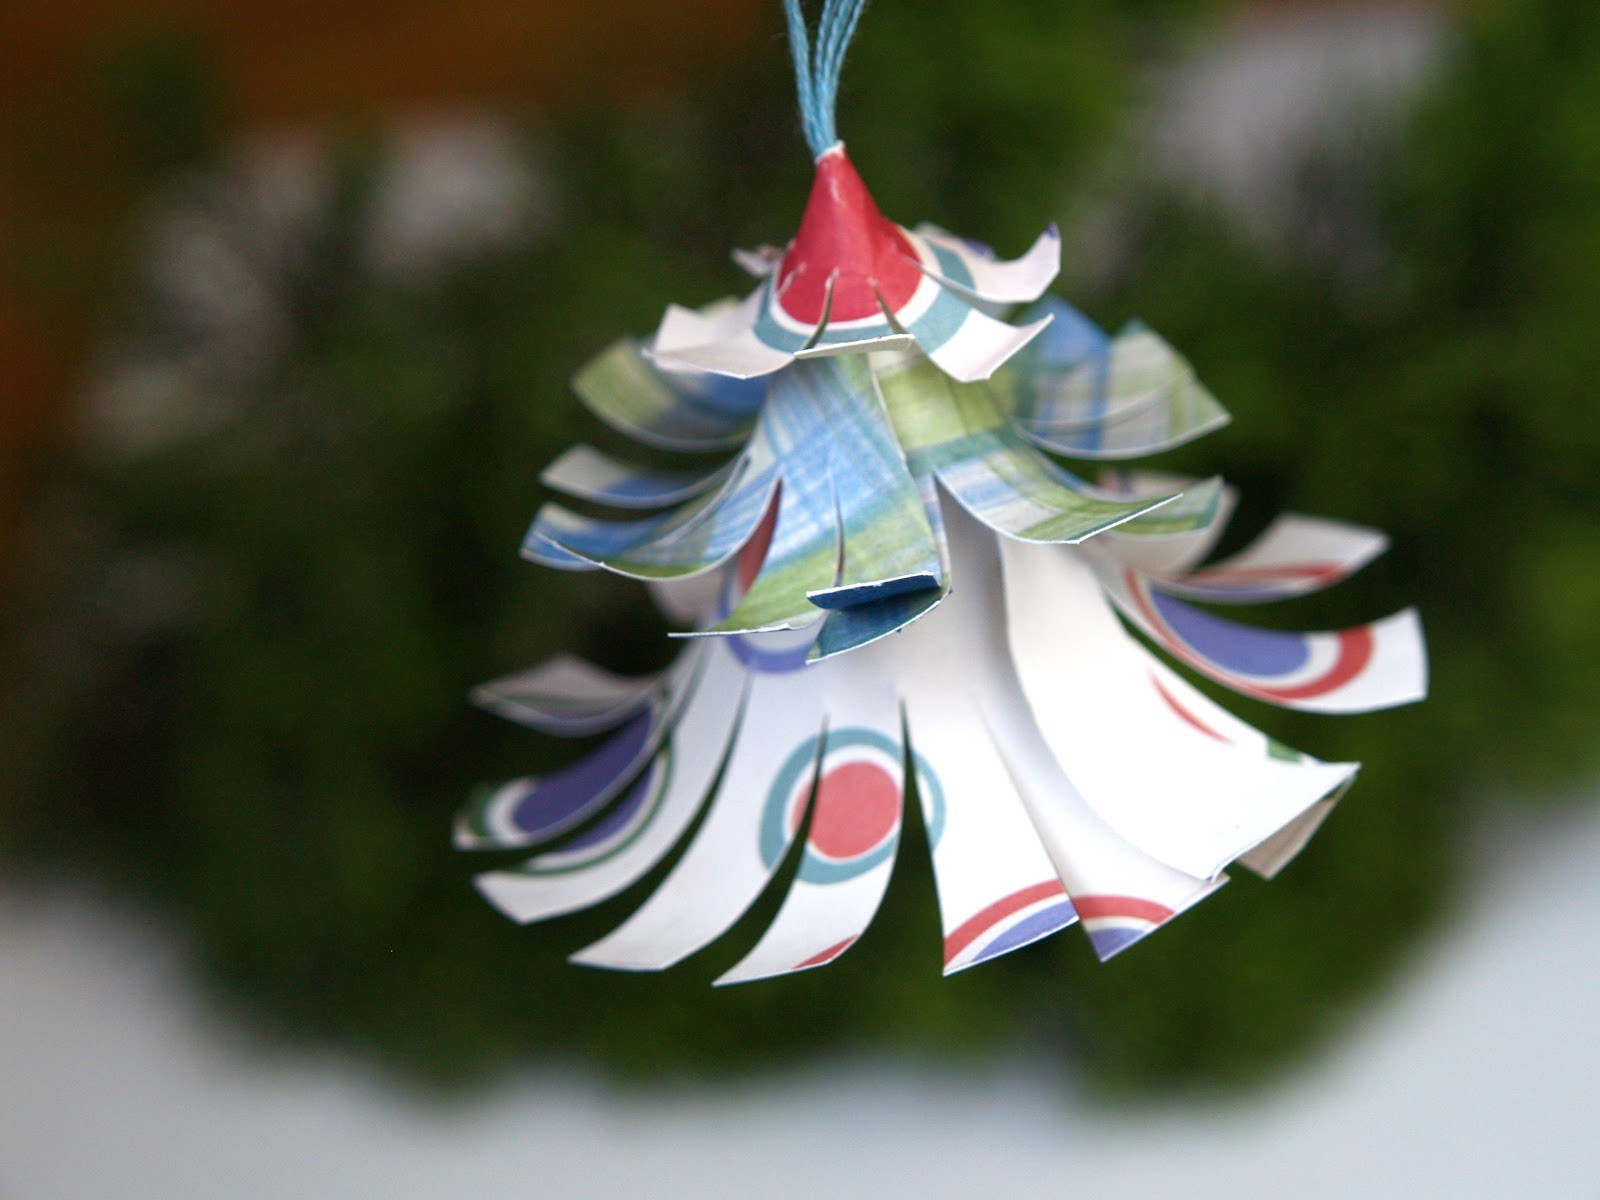 Lovely Make A Colorful Christmas Tree ornament ornaments On Christmas Tree Of Delightful 46 Images ornaments On Christmas Tree